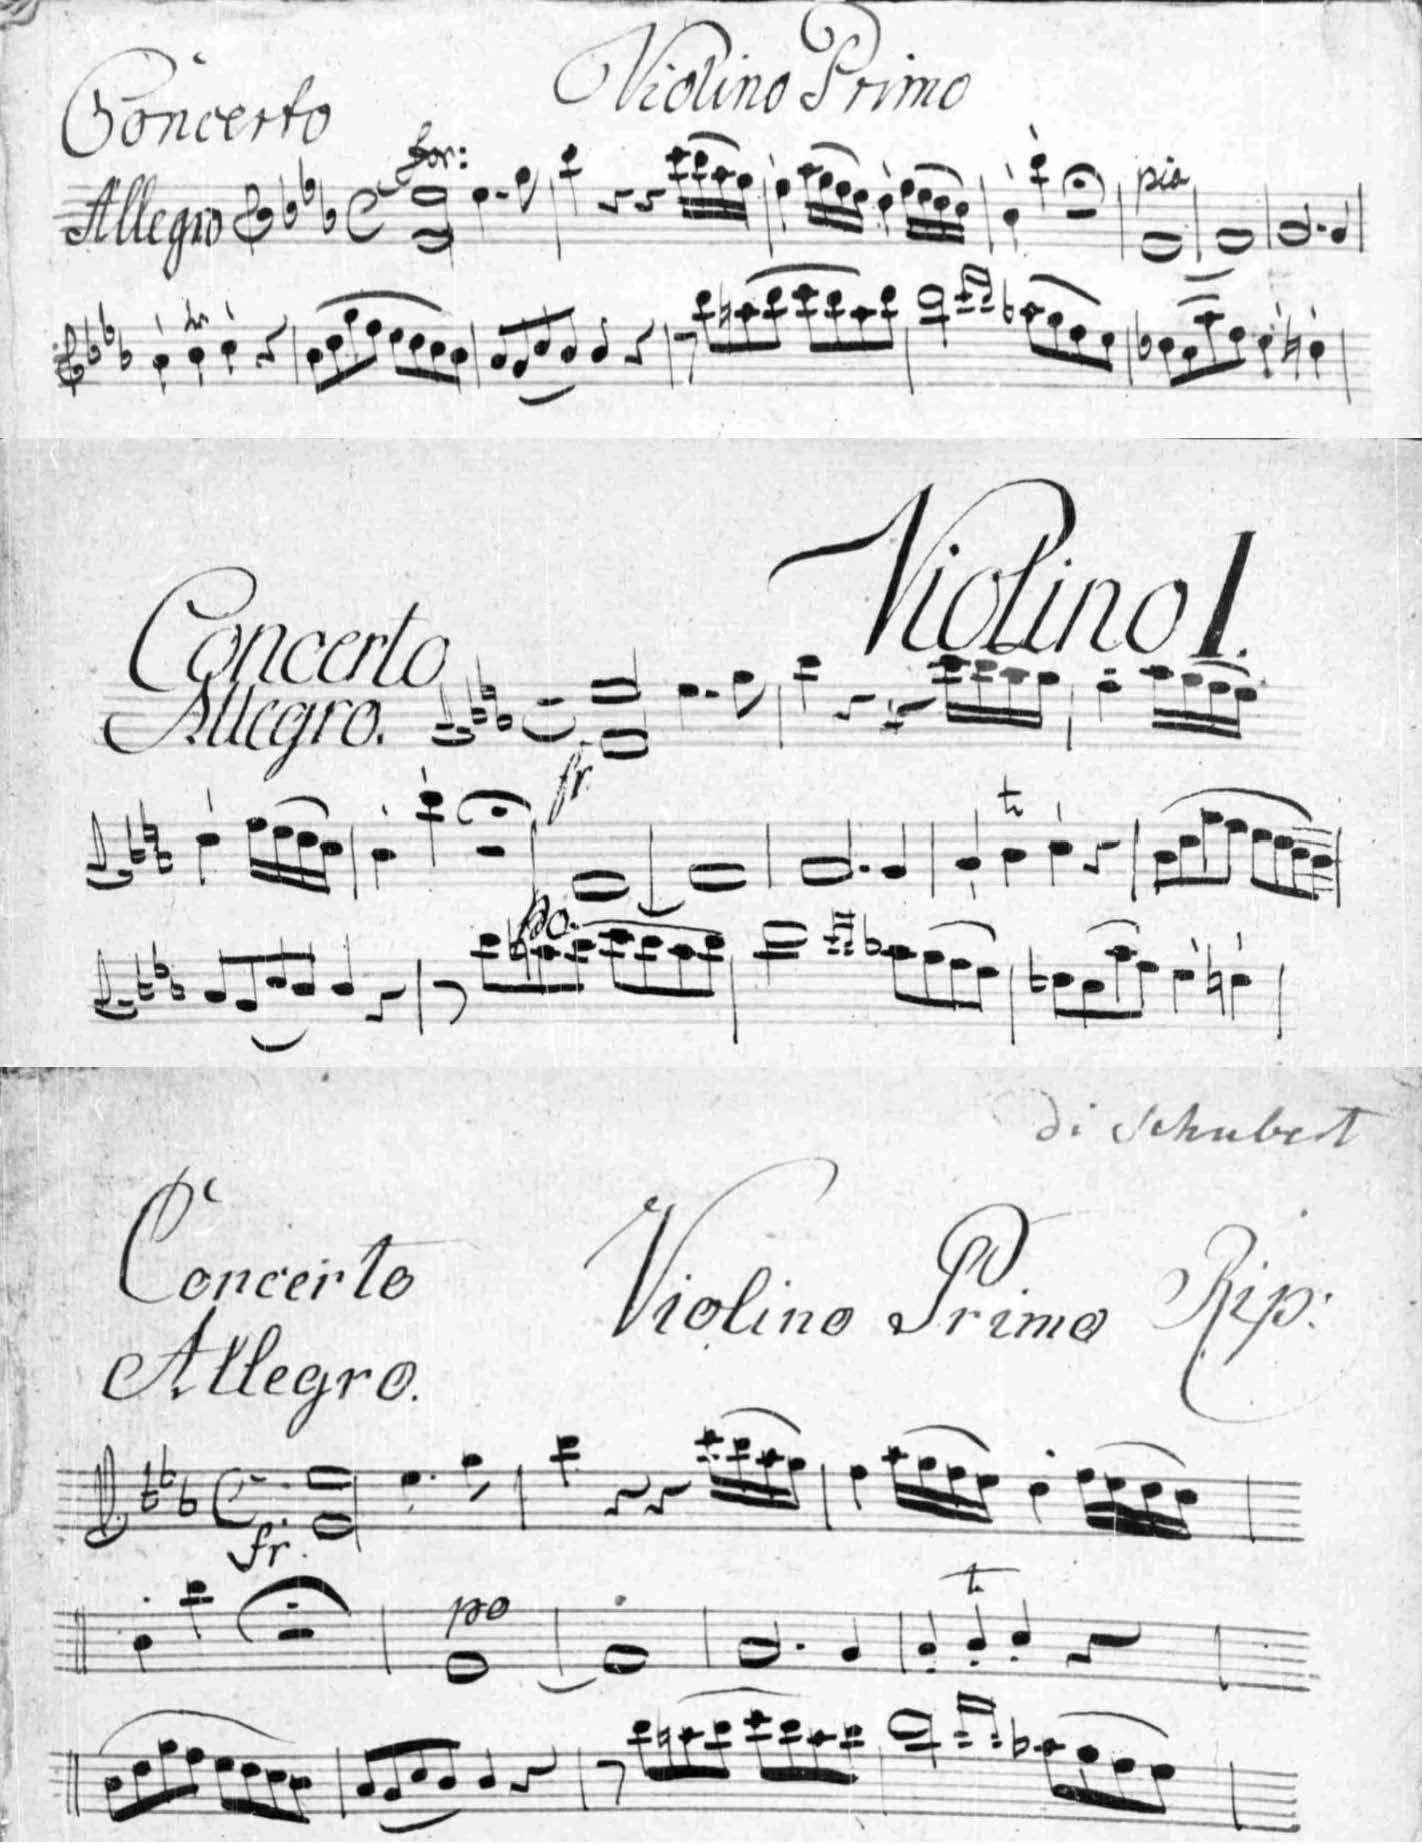 Figure 2. Examples of the three copyists' work from the opening of the first movement, first violin.